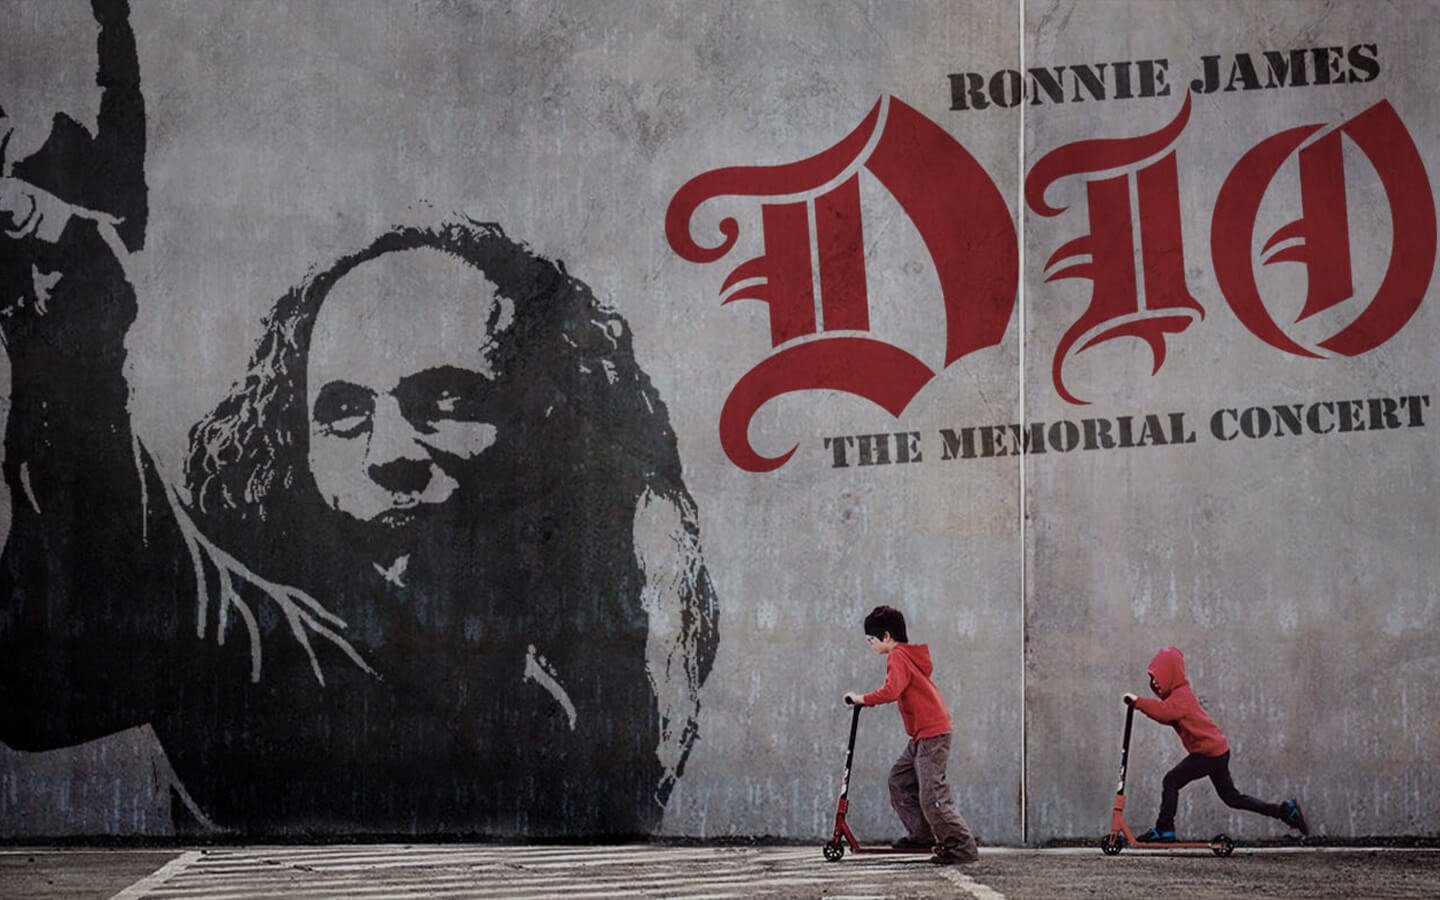 Ronnie James Dio - The Memorial Concert